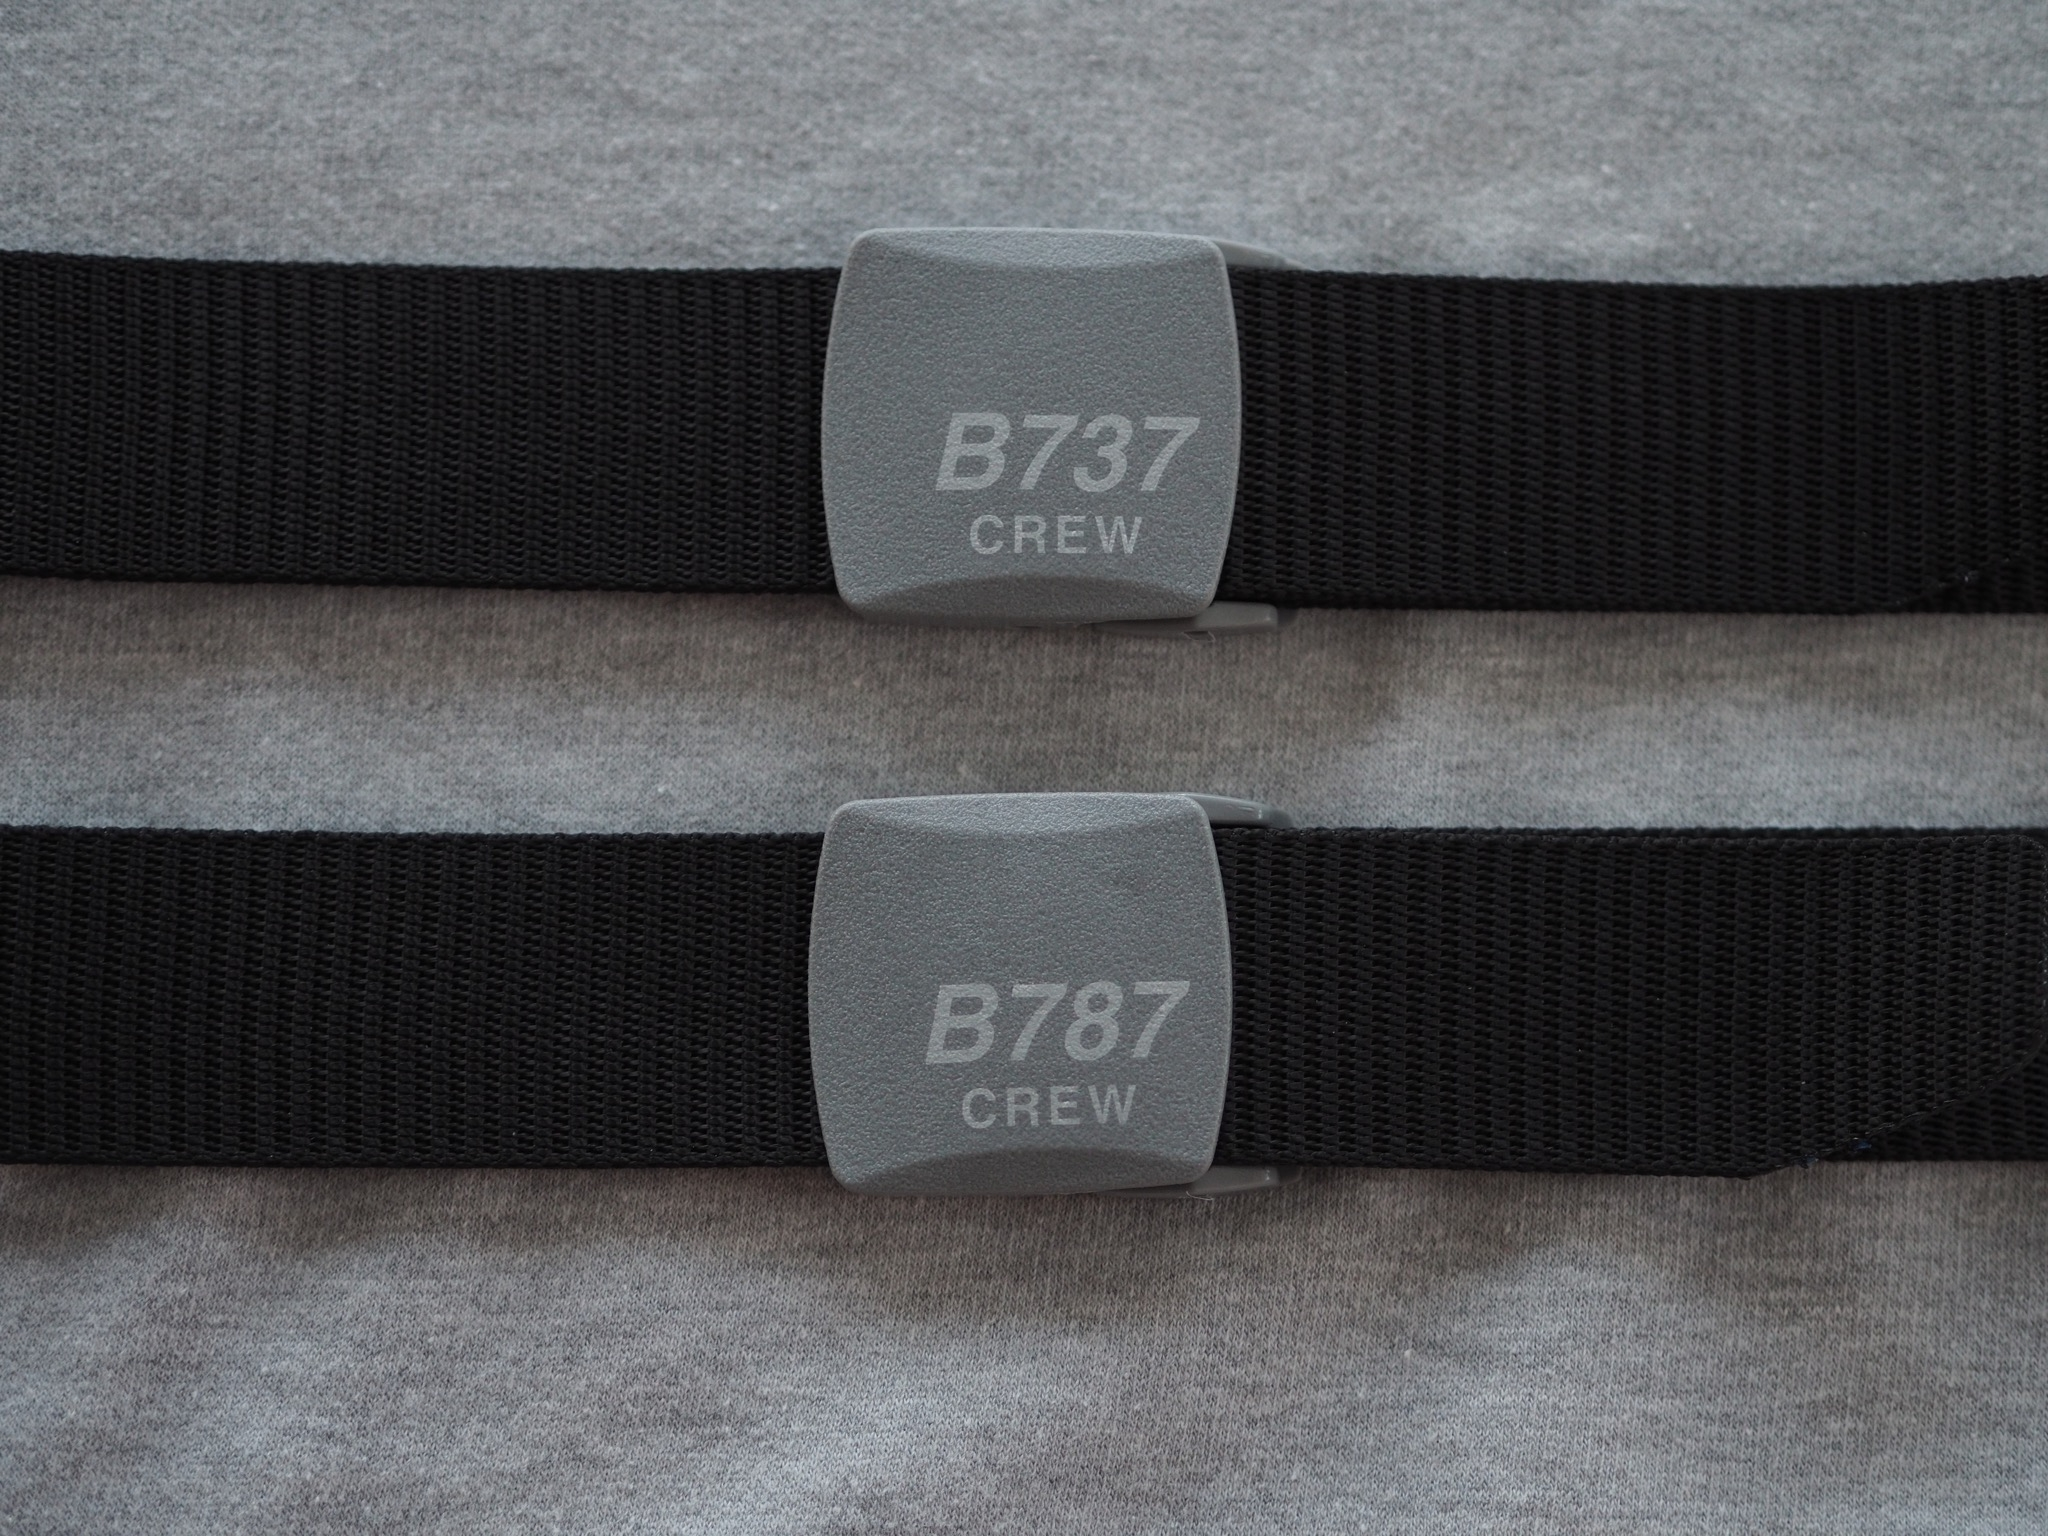 Crew Belts with plastic buckles for an easy pass thriugh security screening